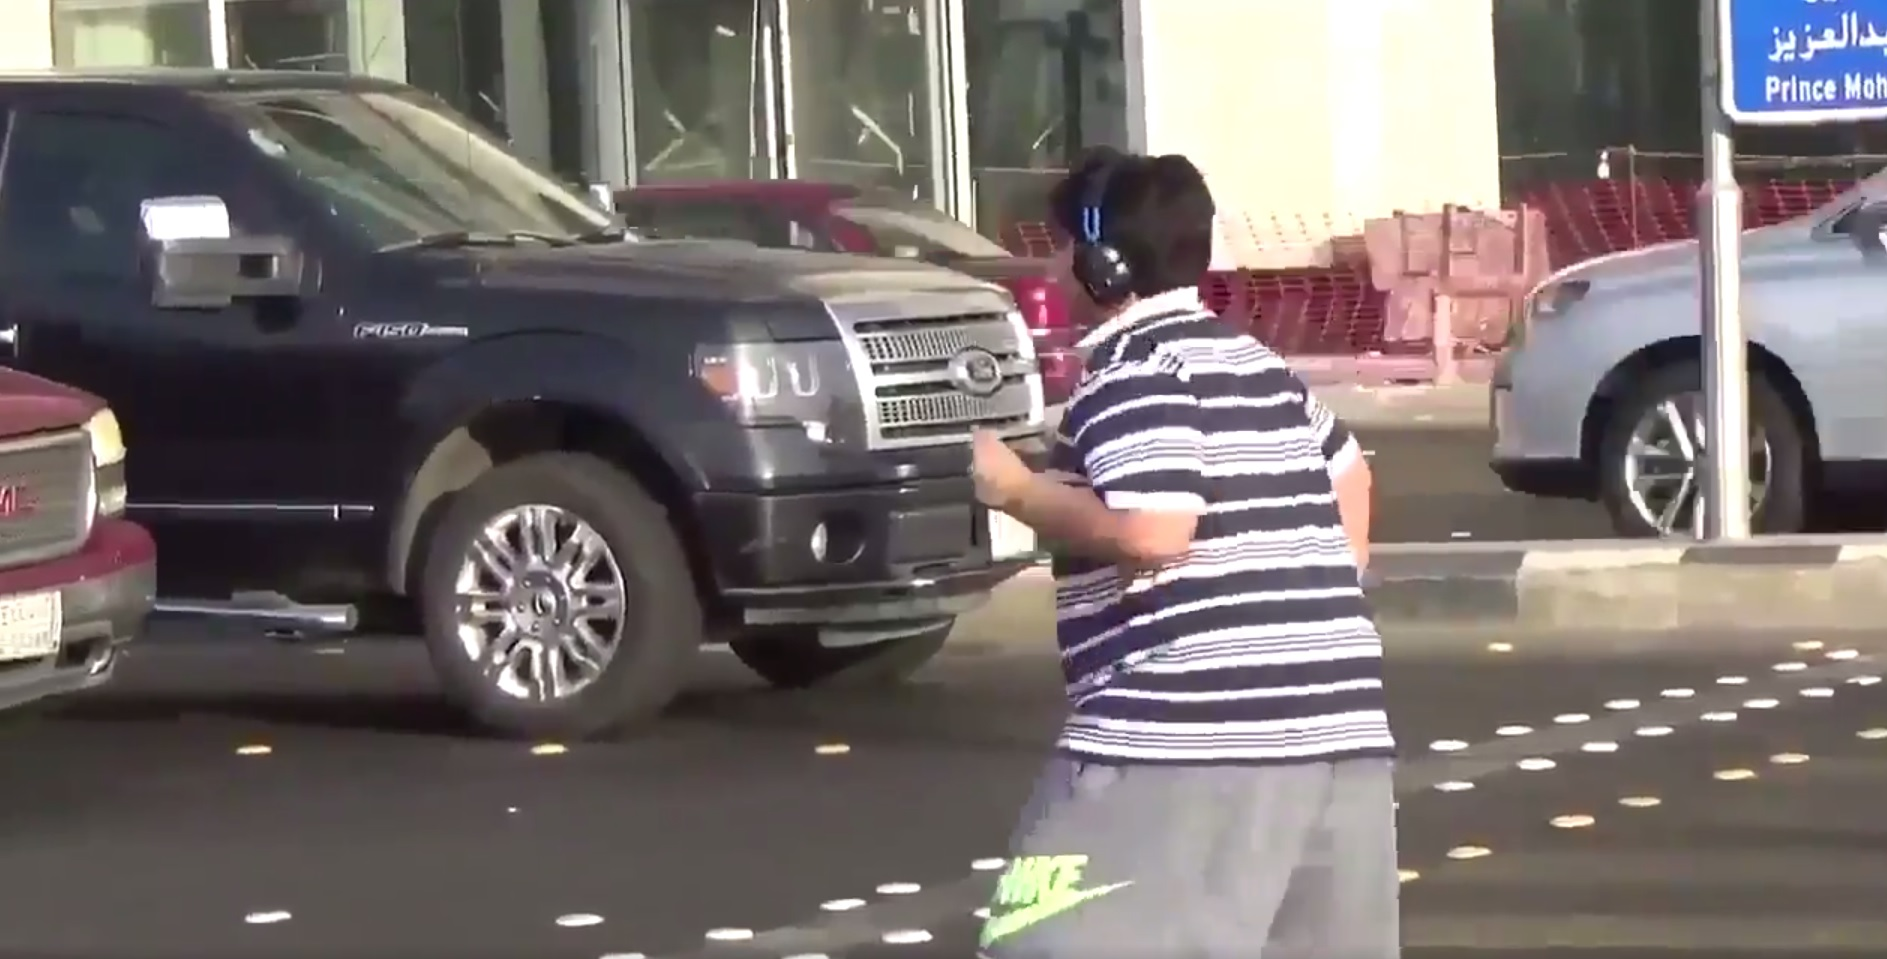 Boy, 14, arrested in Saudi Arabia for dancing in street to Macarena